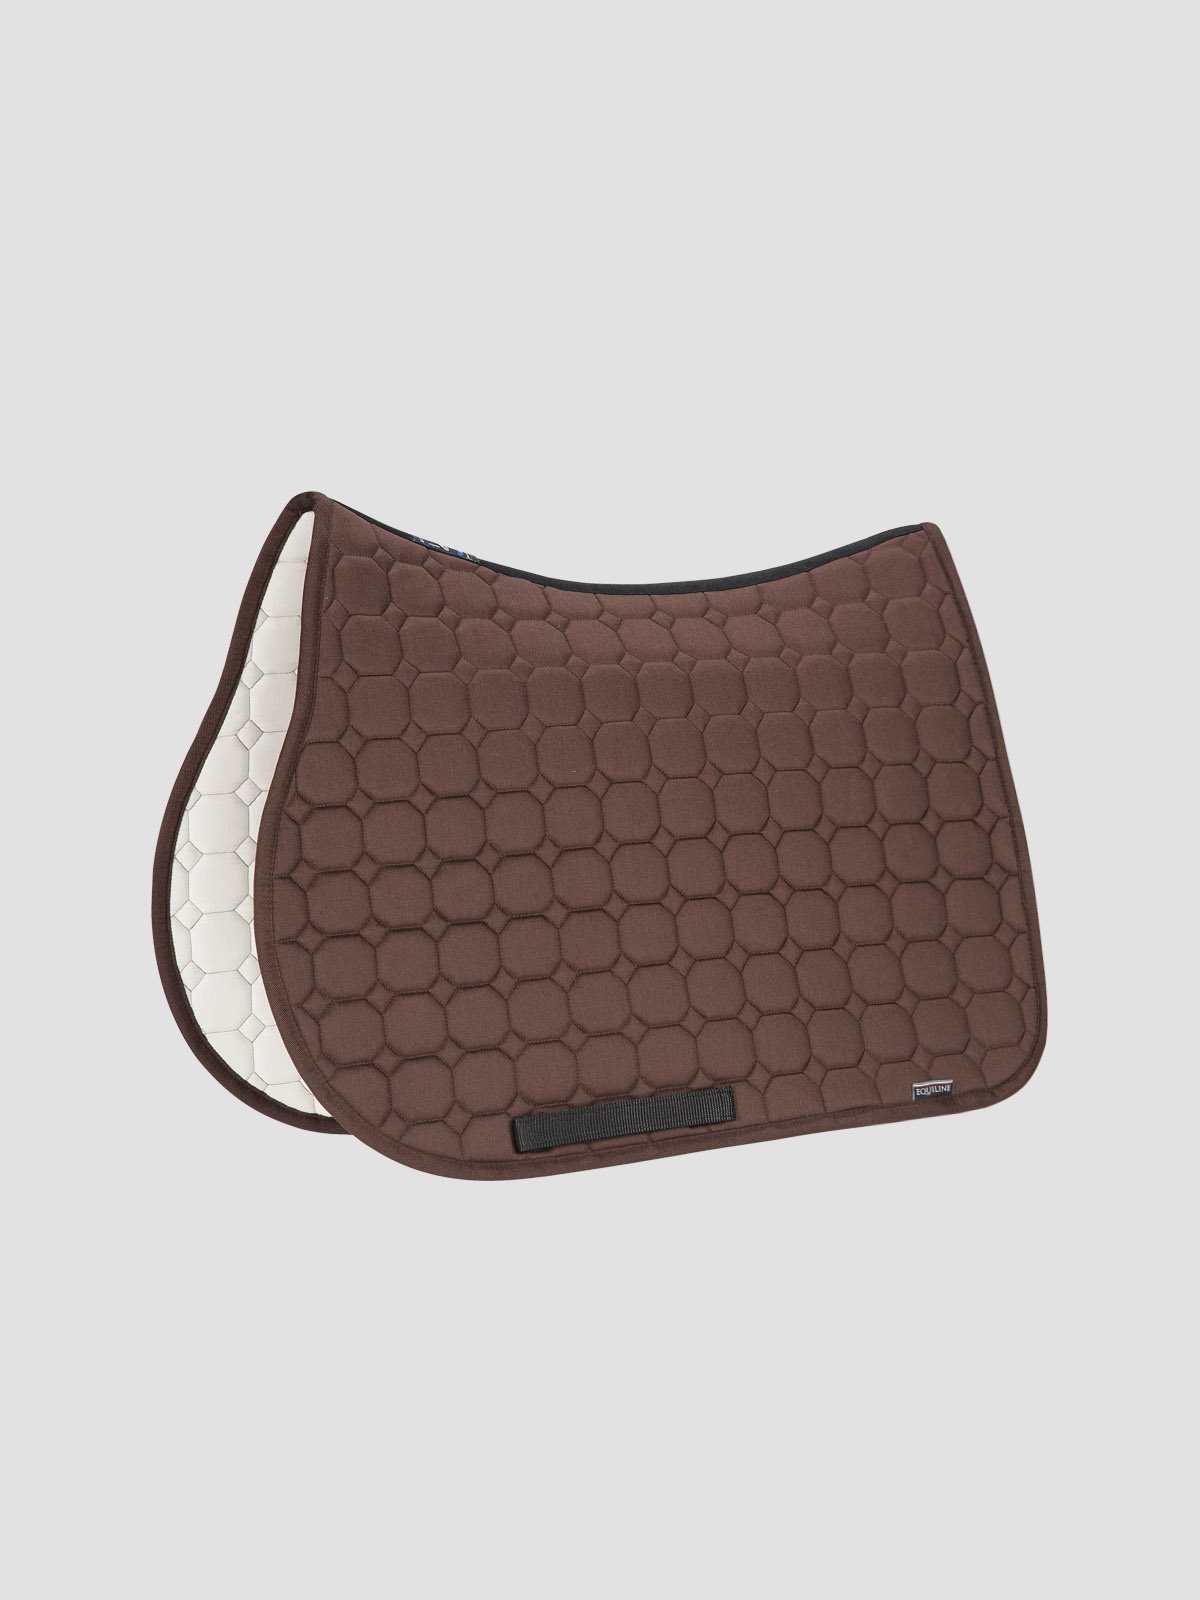 Octagon Saddle Pad 5